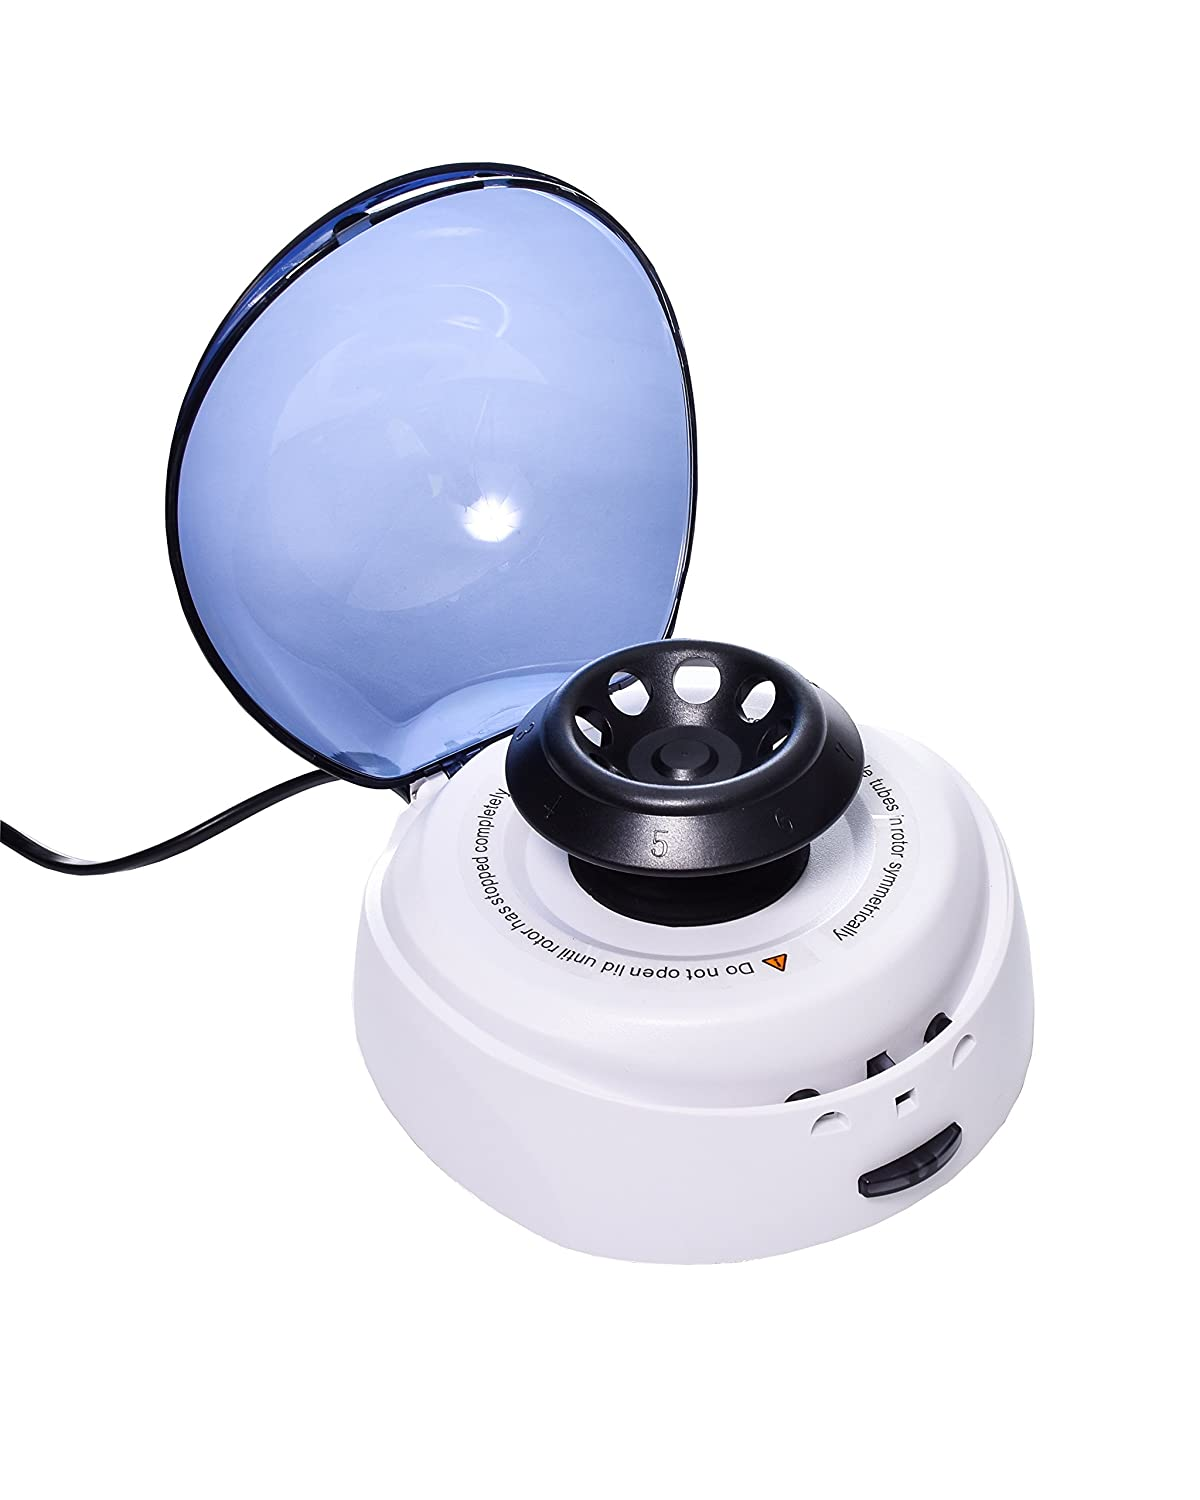 Camlab 1190944 D1008 Mini Centrifuge with Blue Lid